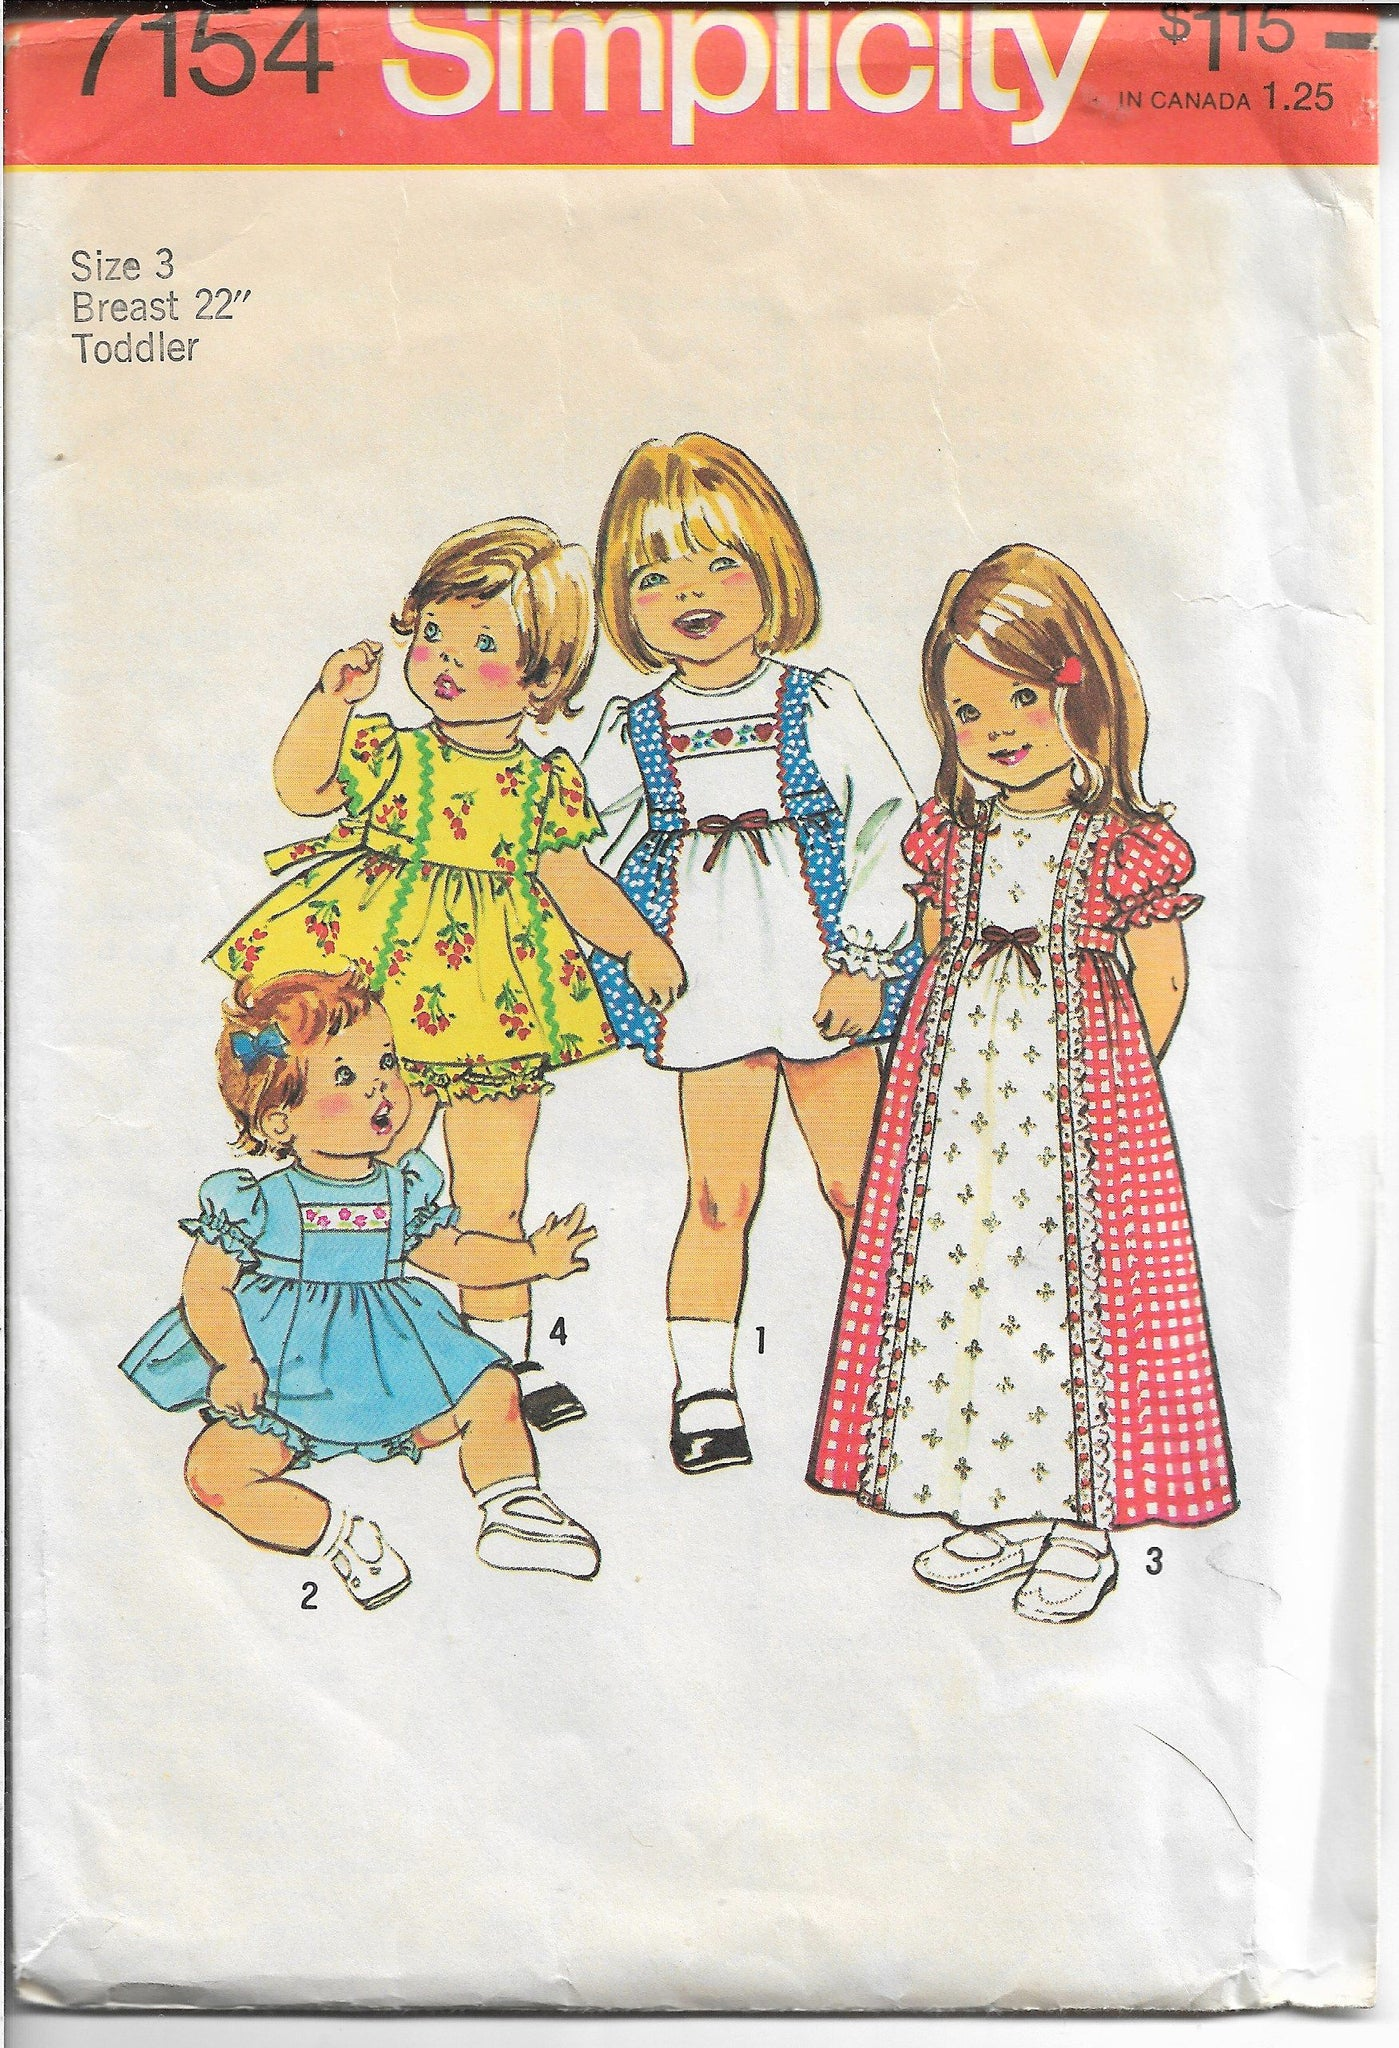 Simplicity 7154 Toddlers Shortie Dress Panties Vintage Sewing Pattern 1970s - VintageStitching - Vintage Sewing Patterns